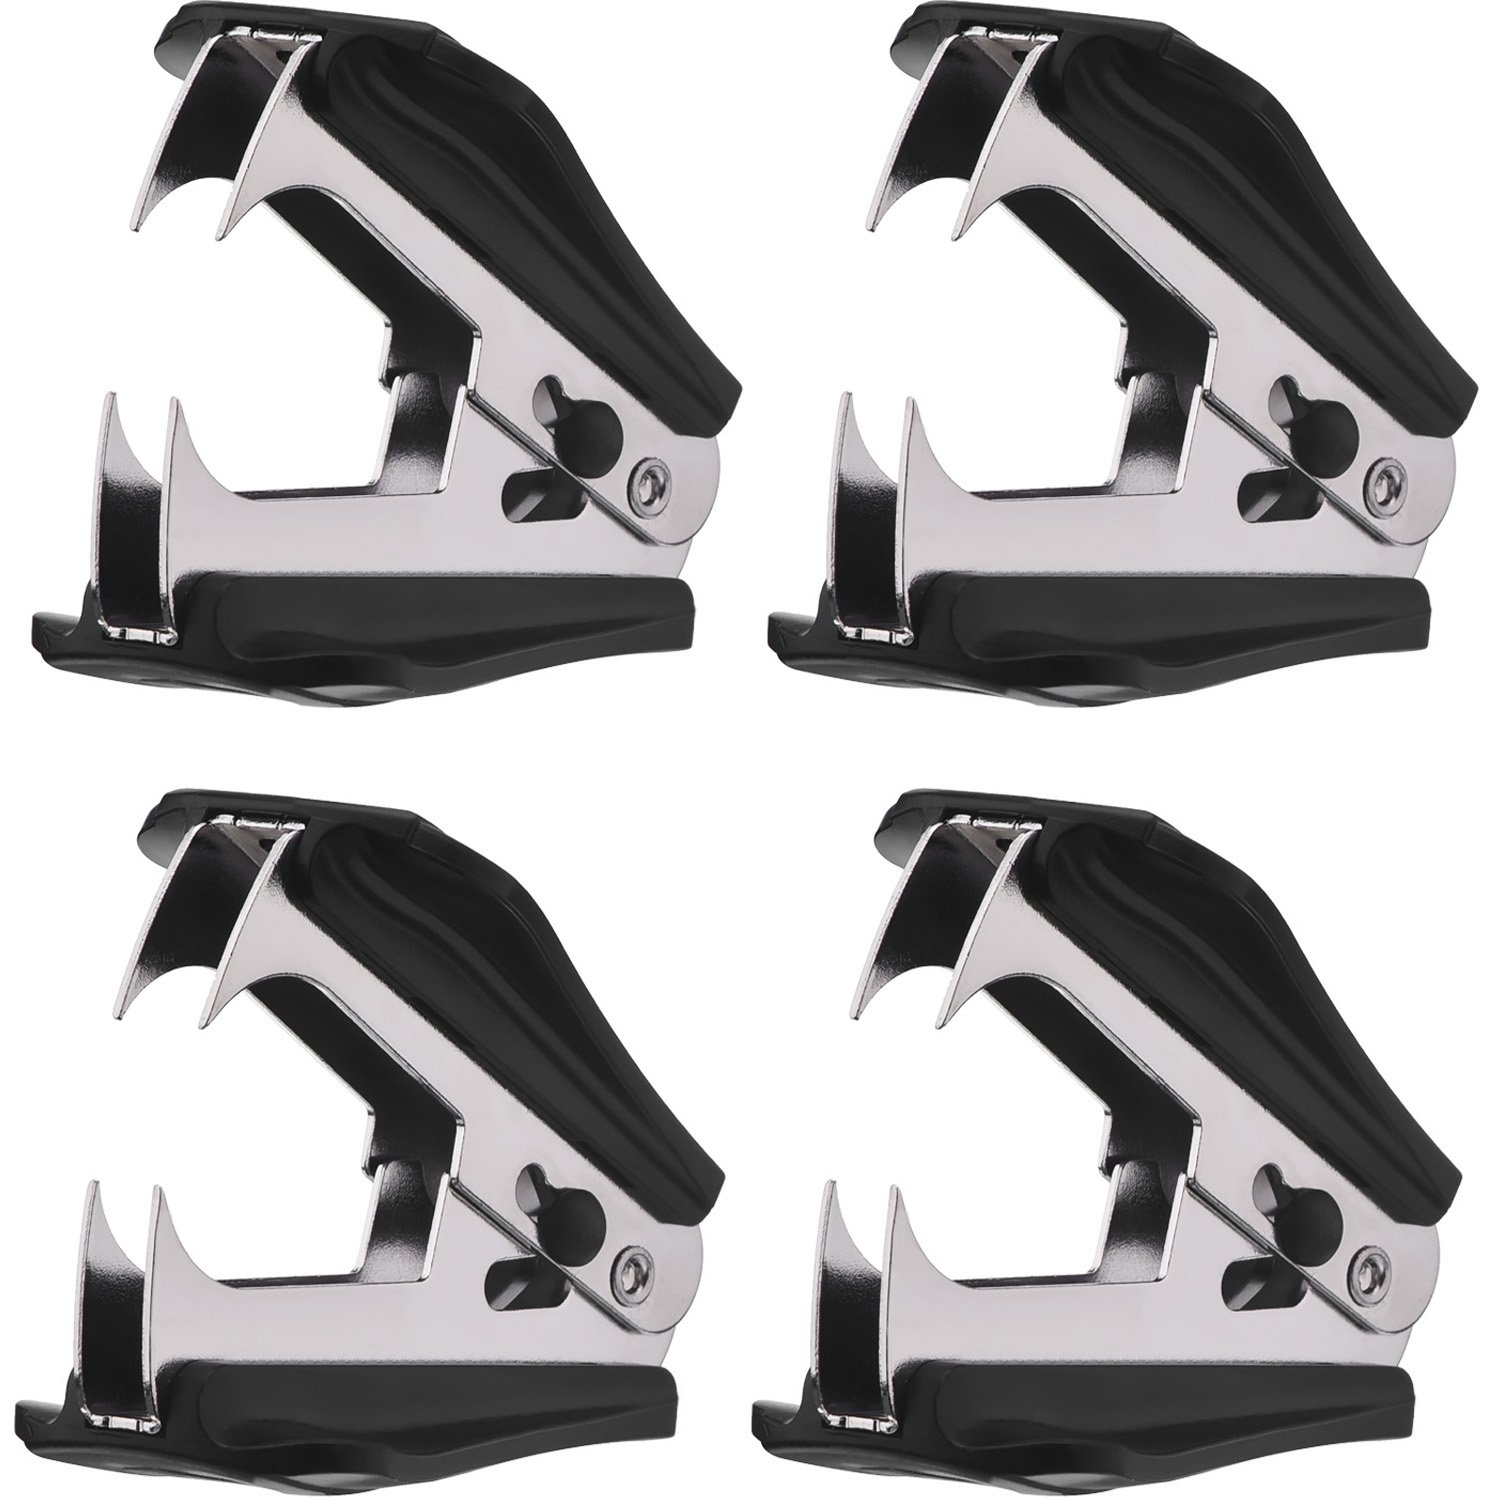 Office and Home,Black 4 Pack Staple Removers Staple Remover Tool with Extra Wide Steel Jaws for School